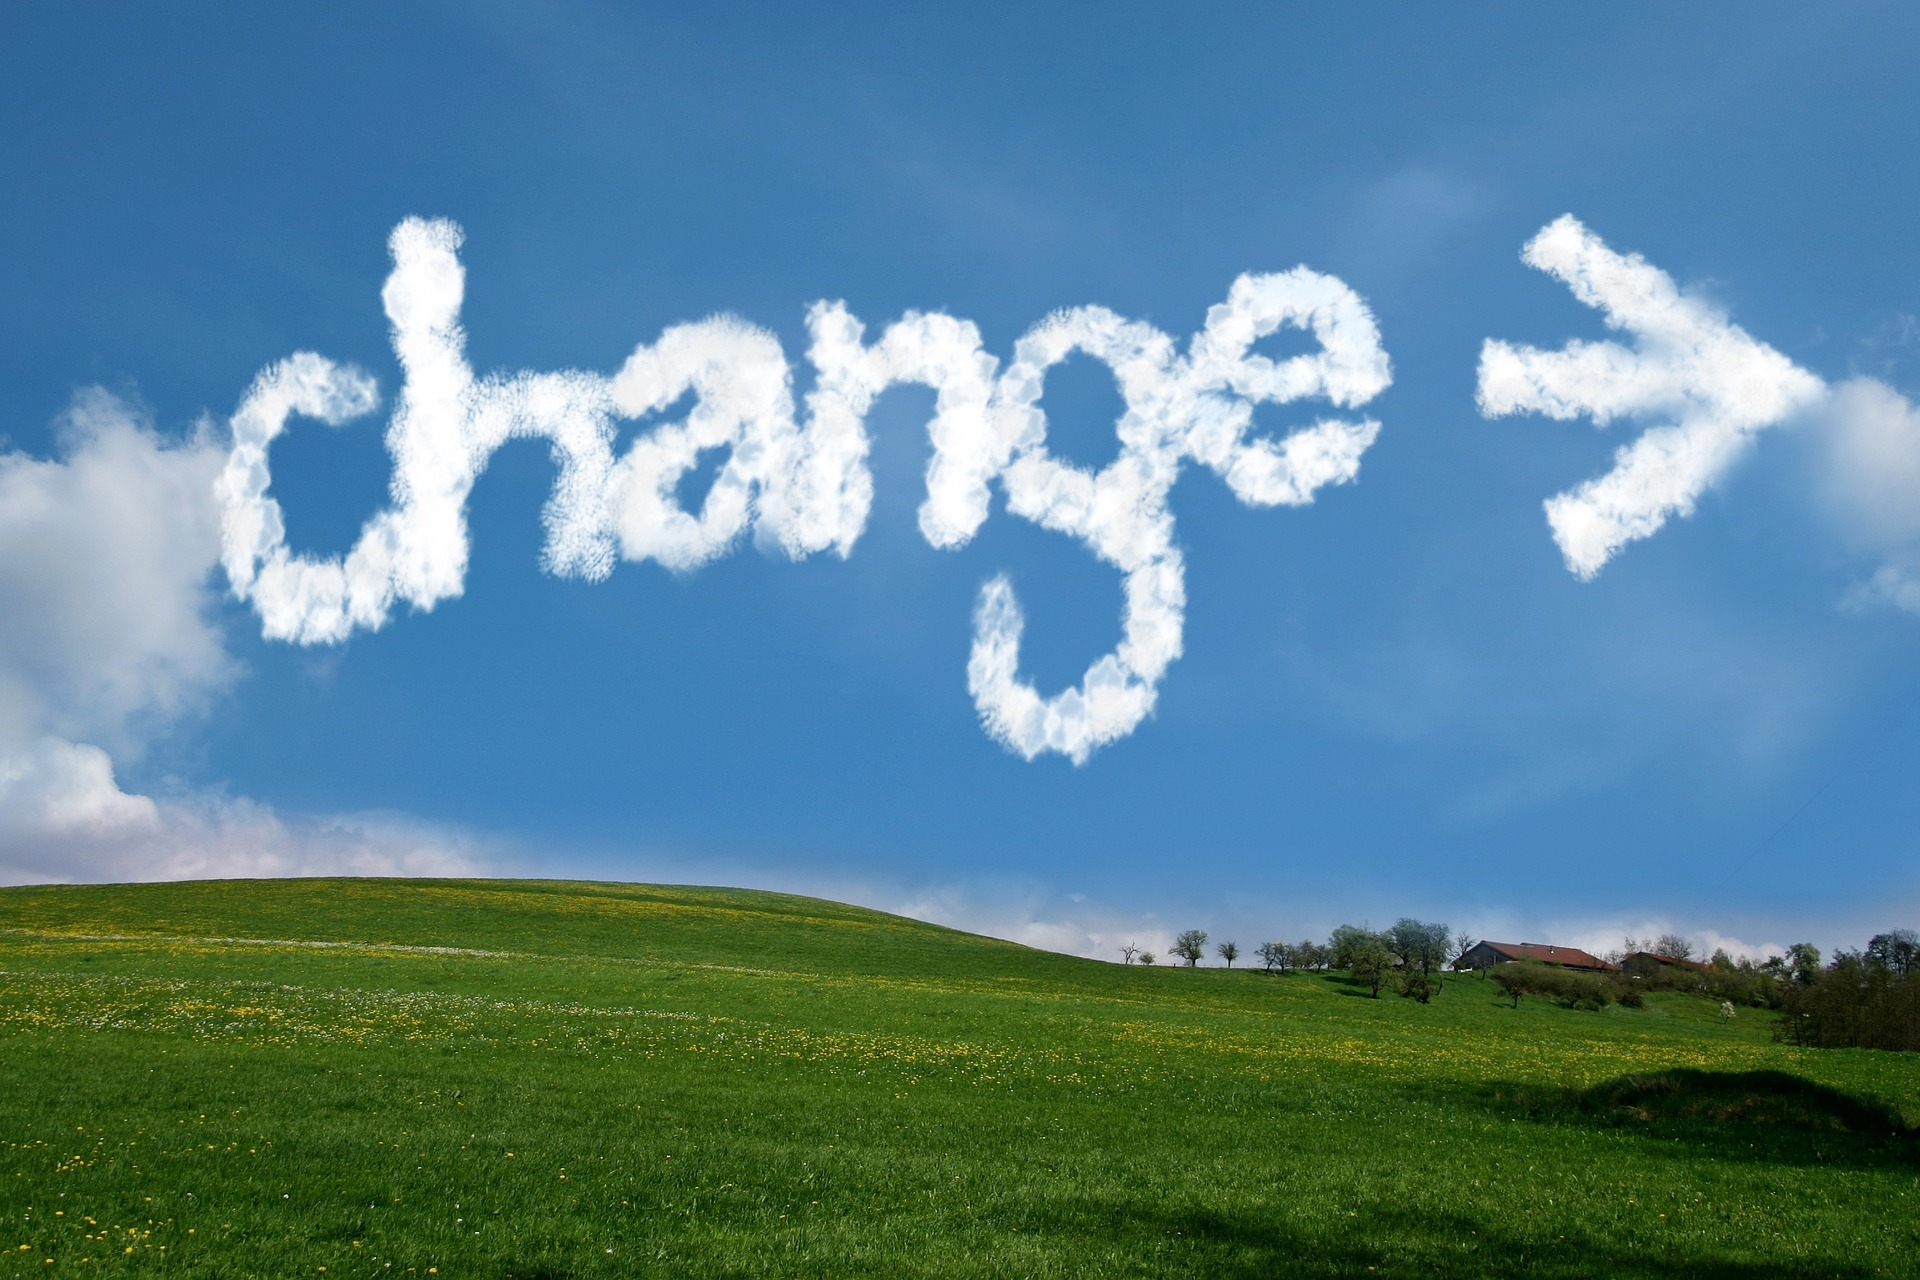 https://chiefmomofficer.org/2018/08/13/if-you-dont-change-anything-nothing-will-change-phases-of-change/